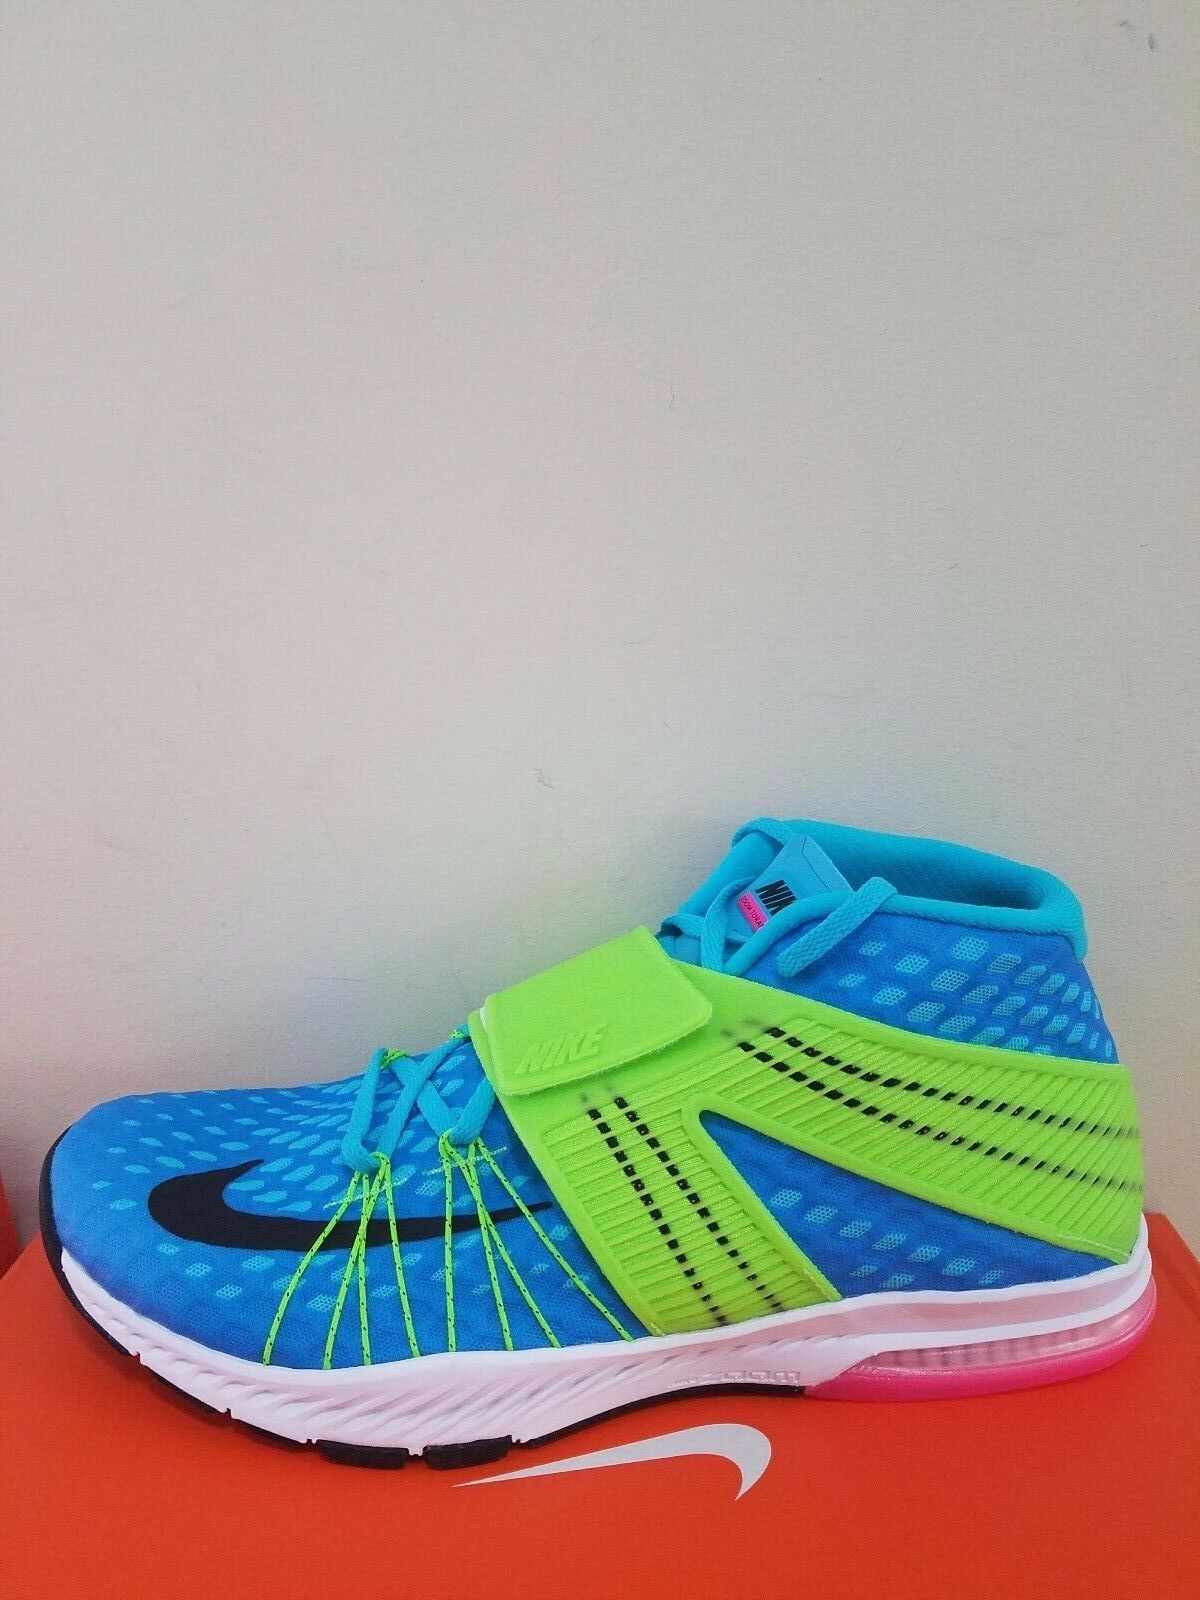 Homme Nike Zoom train toranada paniers Taille 11 nouveau in Box